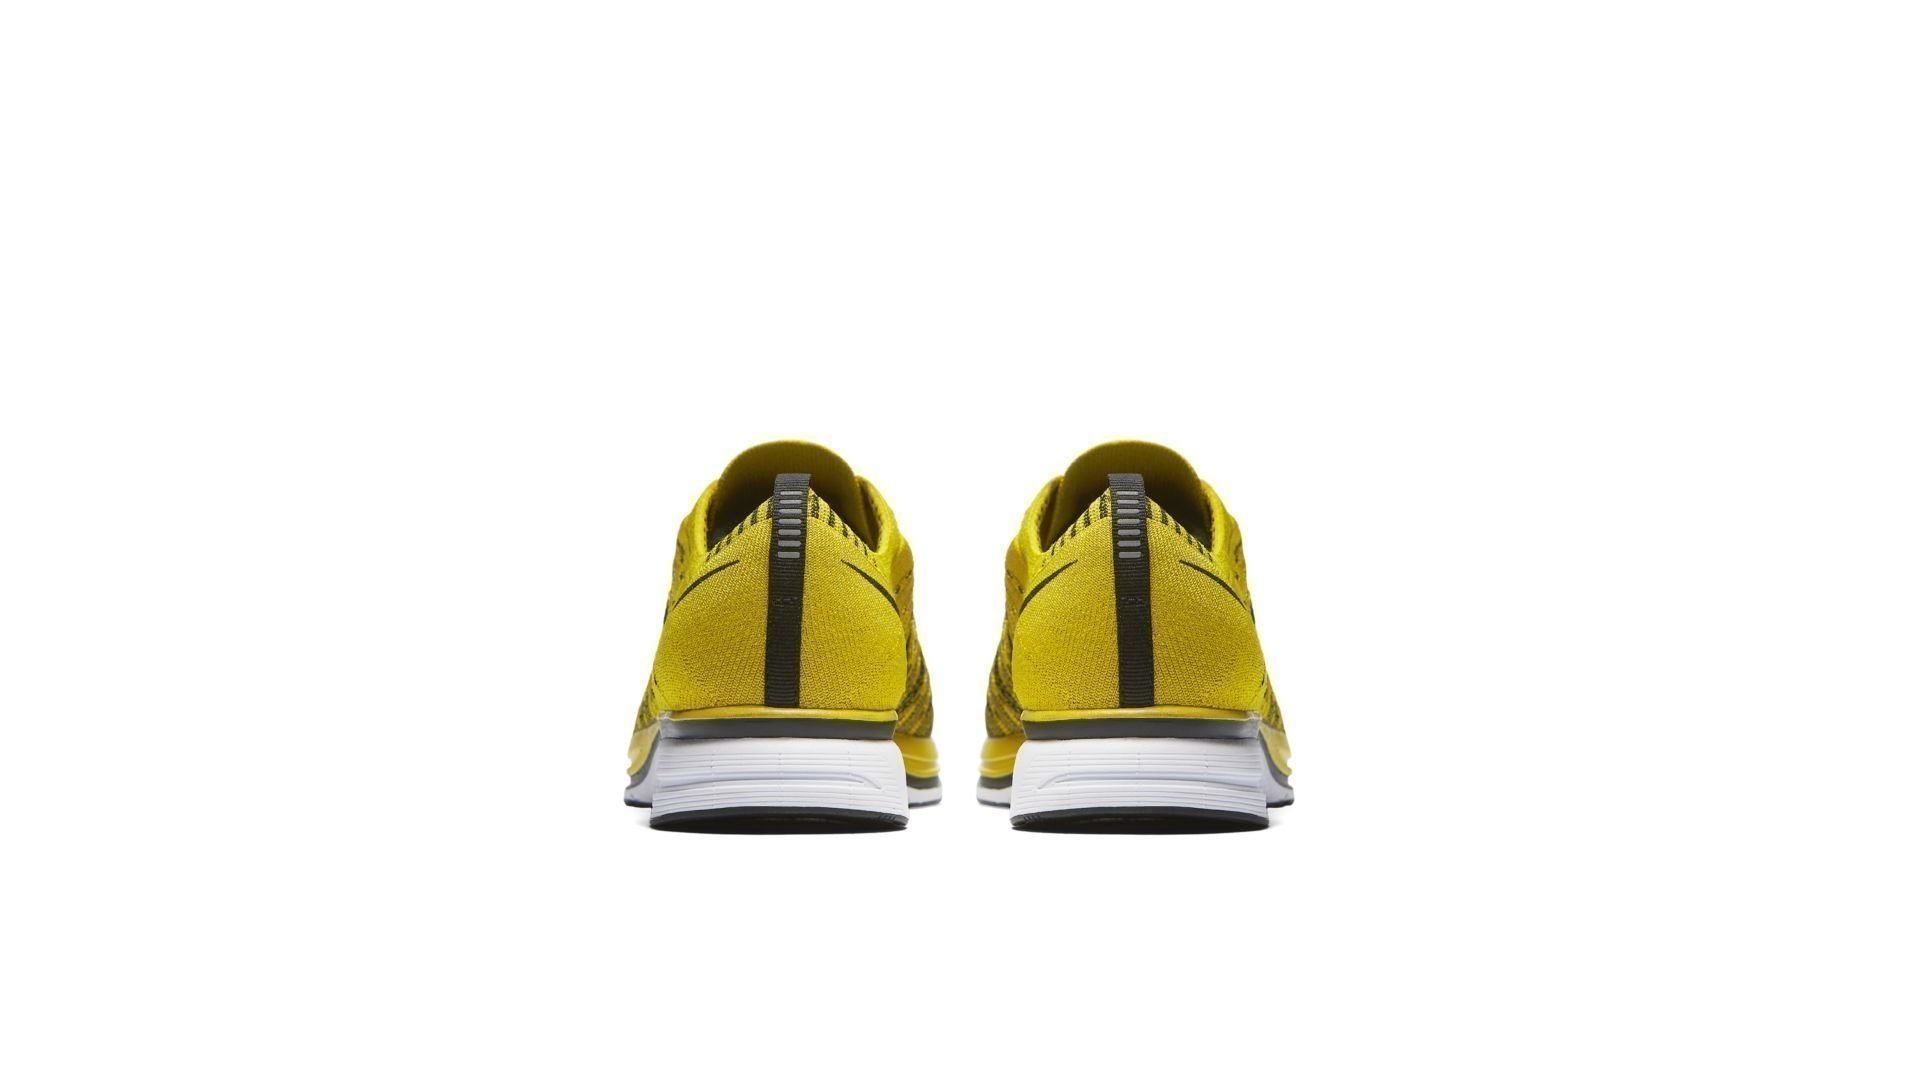 Nike Flyknit Trainer Bright Citron (AH8396-700)